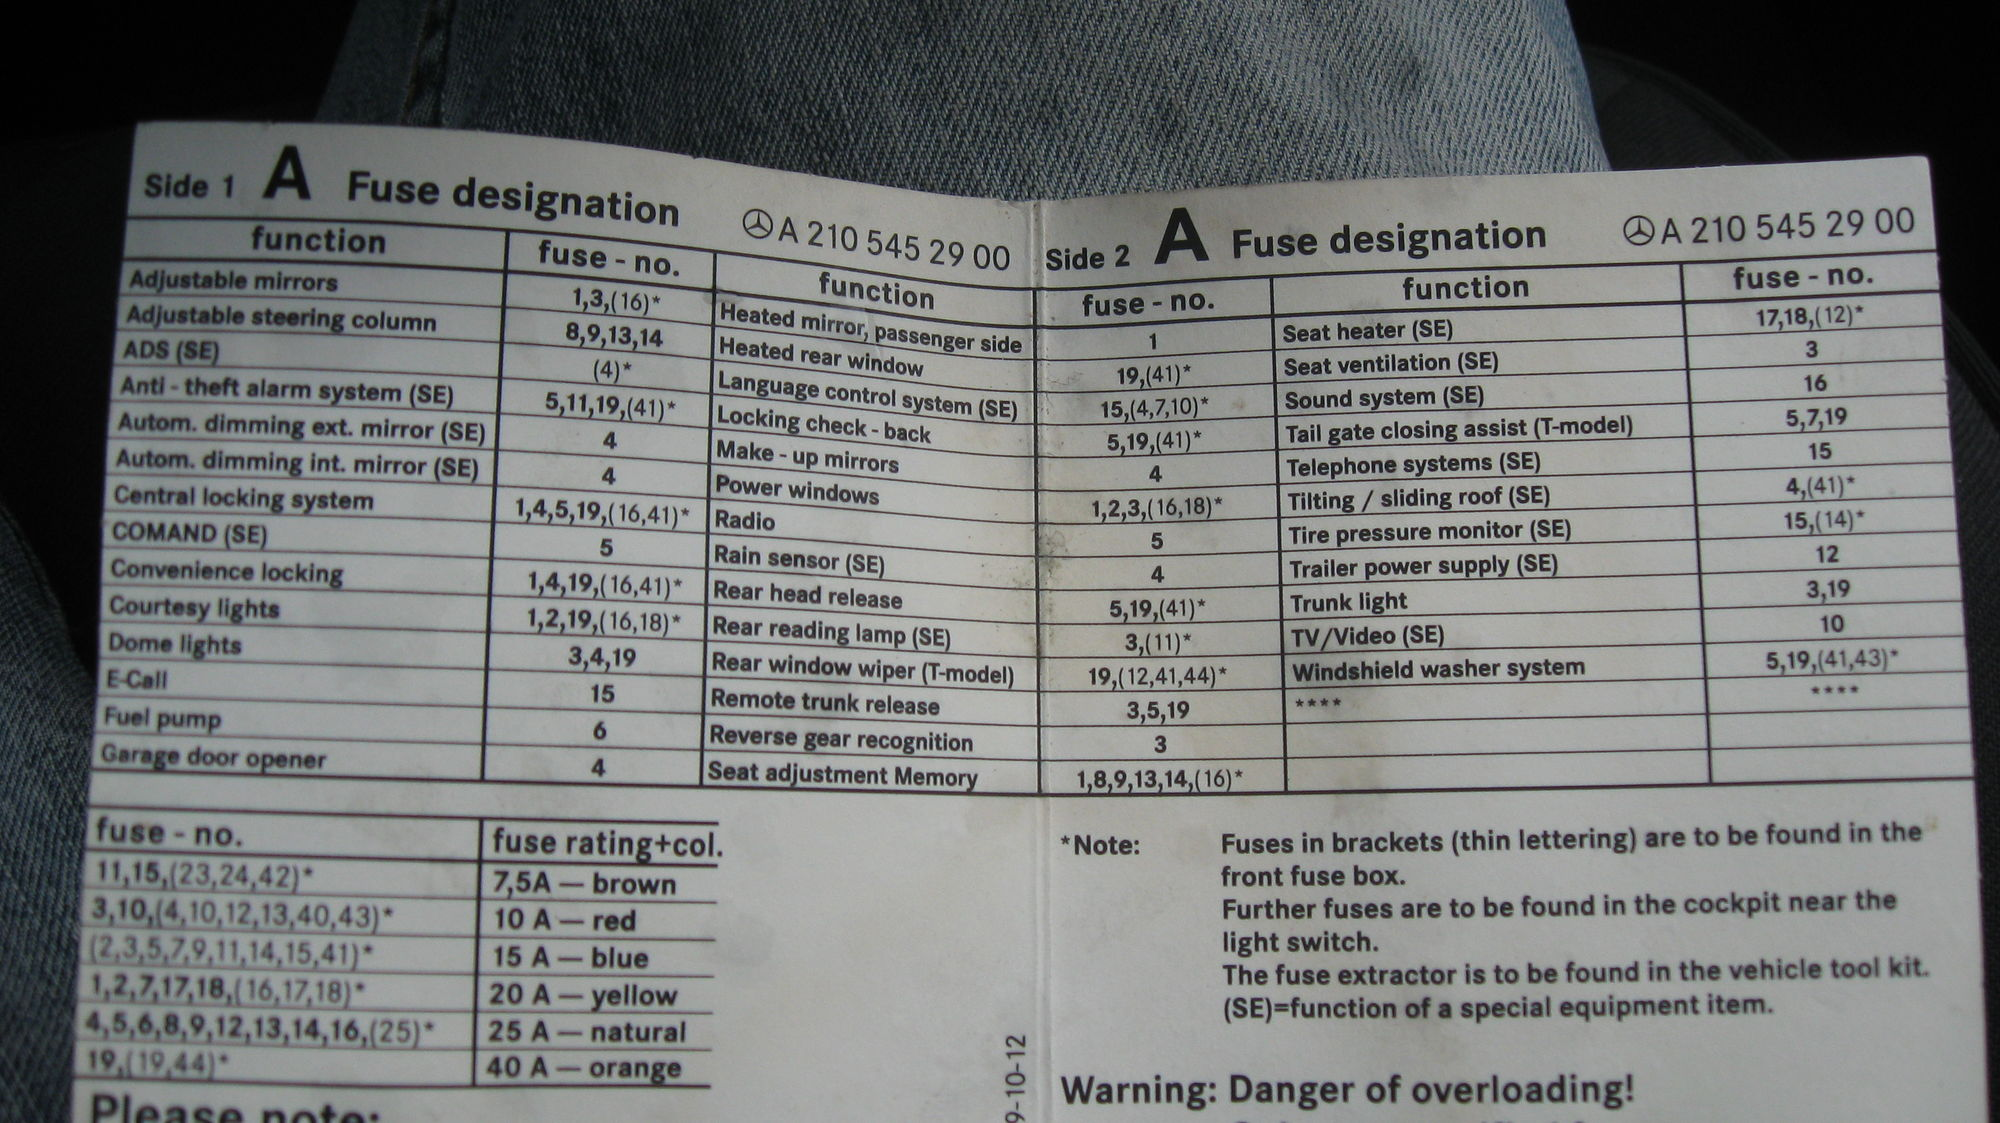 hight resolution of fyi w210 fuse cards mbworld org forums 2003 mercedes c320 relay diagram 2004 mercedes c320 fuse